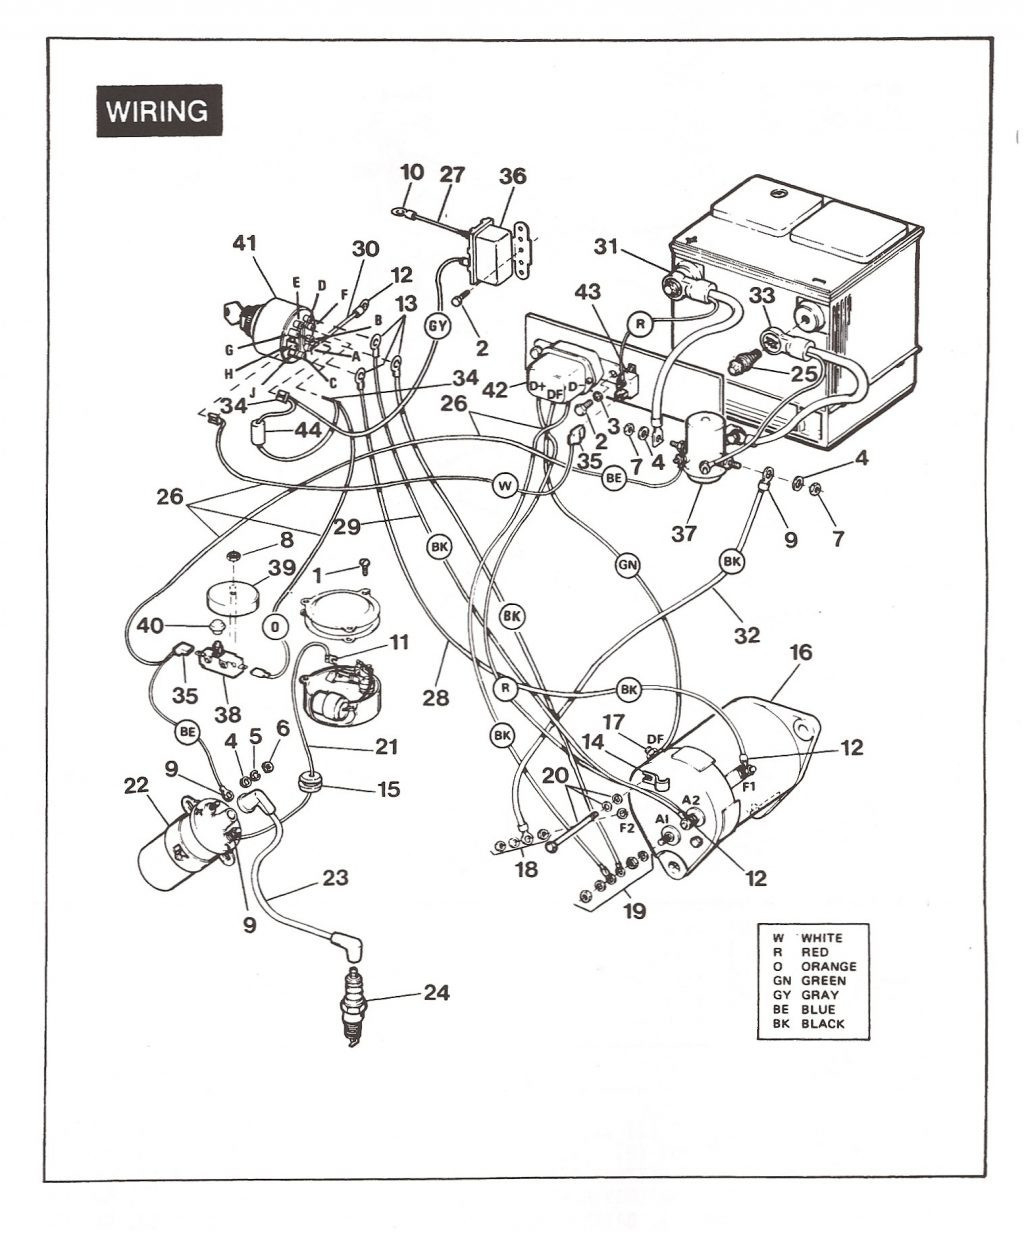 98 Ez Go Wiring Diagram Pdf | Wiring Diagram - Ez Go Golf Cart Wiring Diagram Pdf